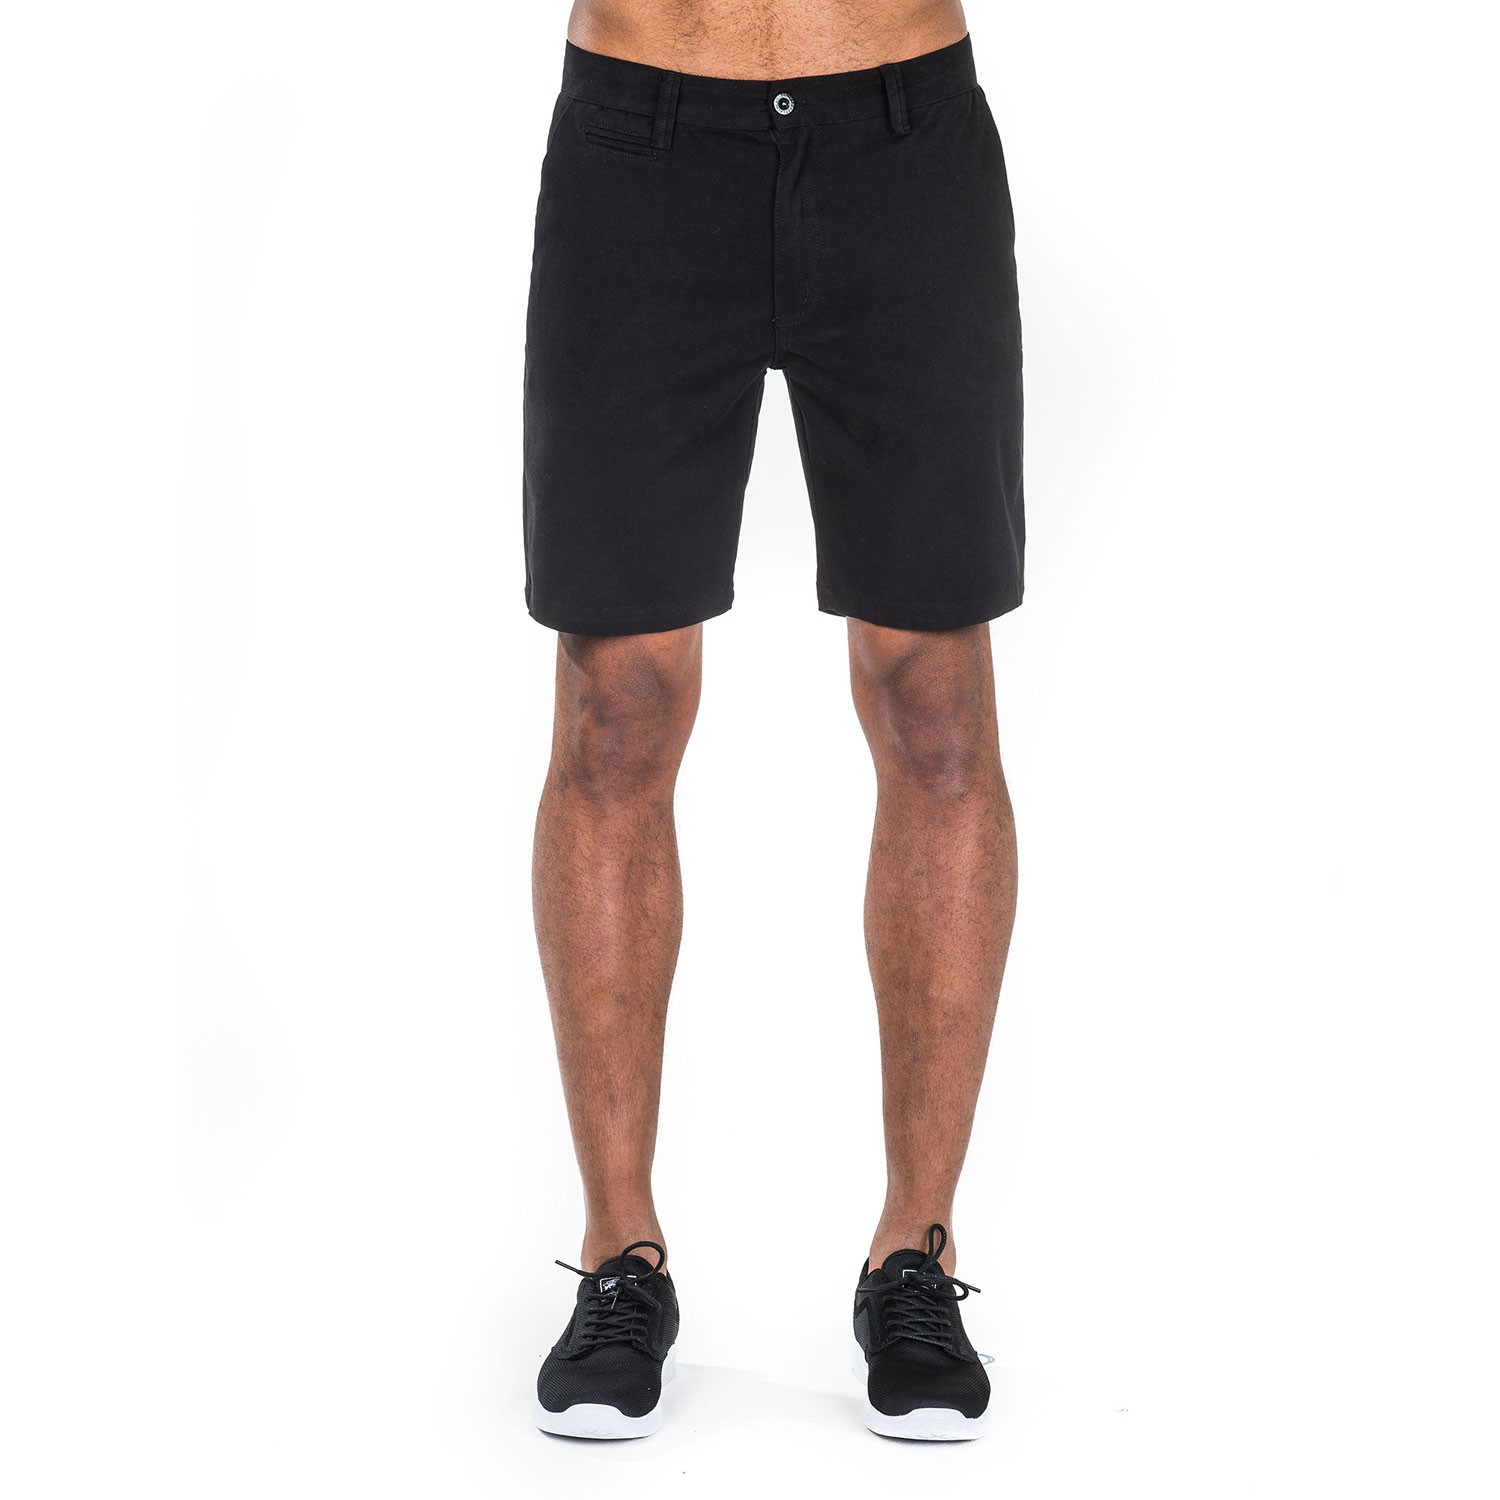 Kraťasy Horsefeathers Ritchie Shorts black